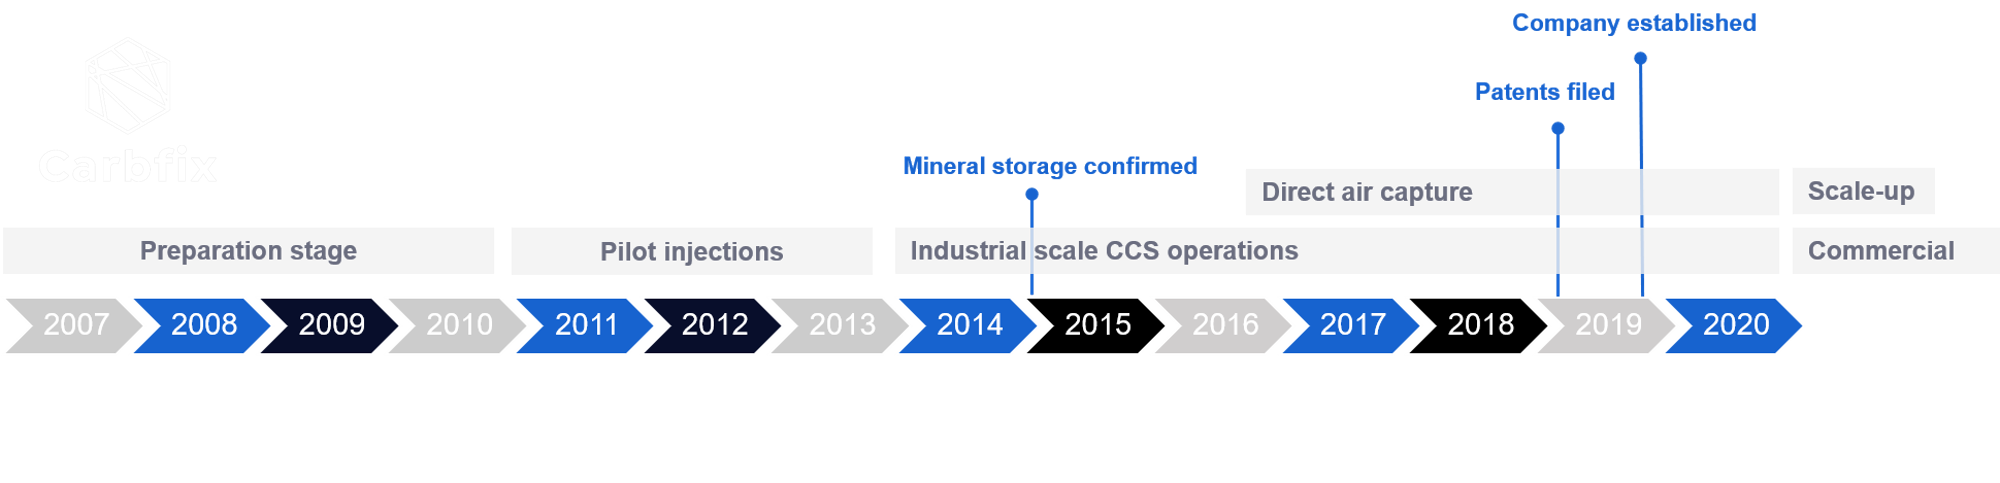 Carbfix timeline. Preparation stage was from 2007-2010. Pilot injections started in 2011 and continued until 2013. Industrial scale CCS operations commenced in 2014 and mineral storage was confirmed in 2015.  Combination with direct air capture started in 2016. Patents were filed in 2019 and Carbfix was established as a company in late 2019.